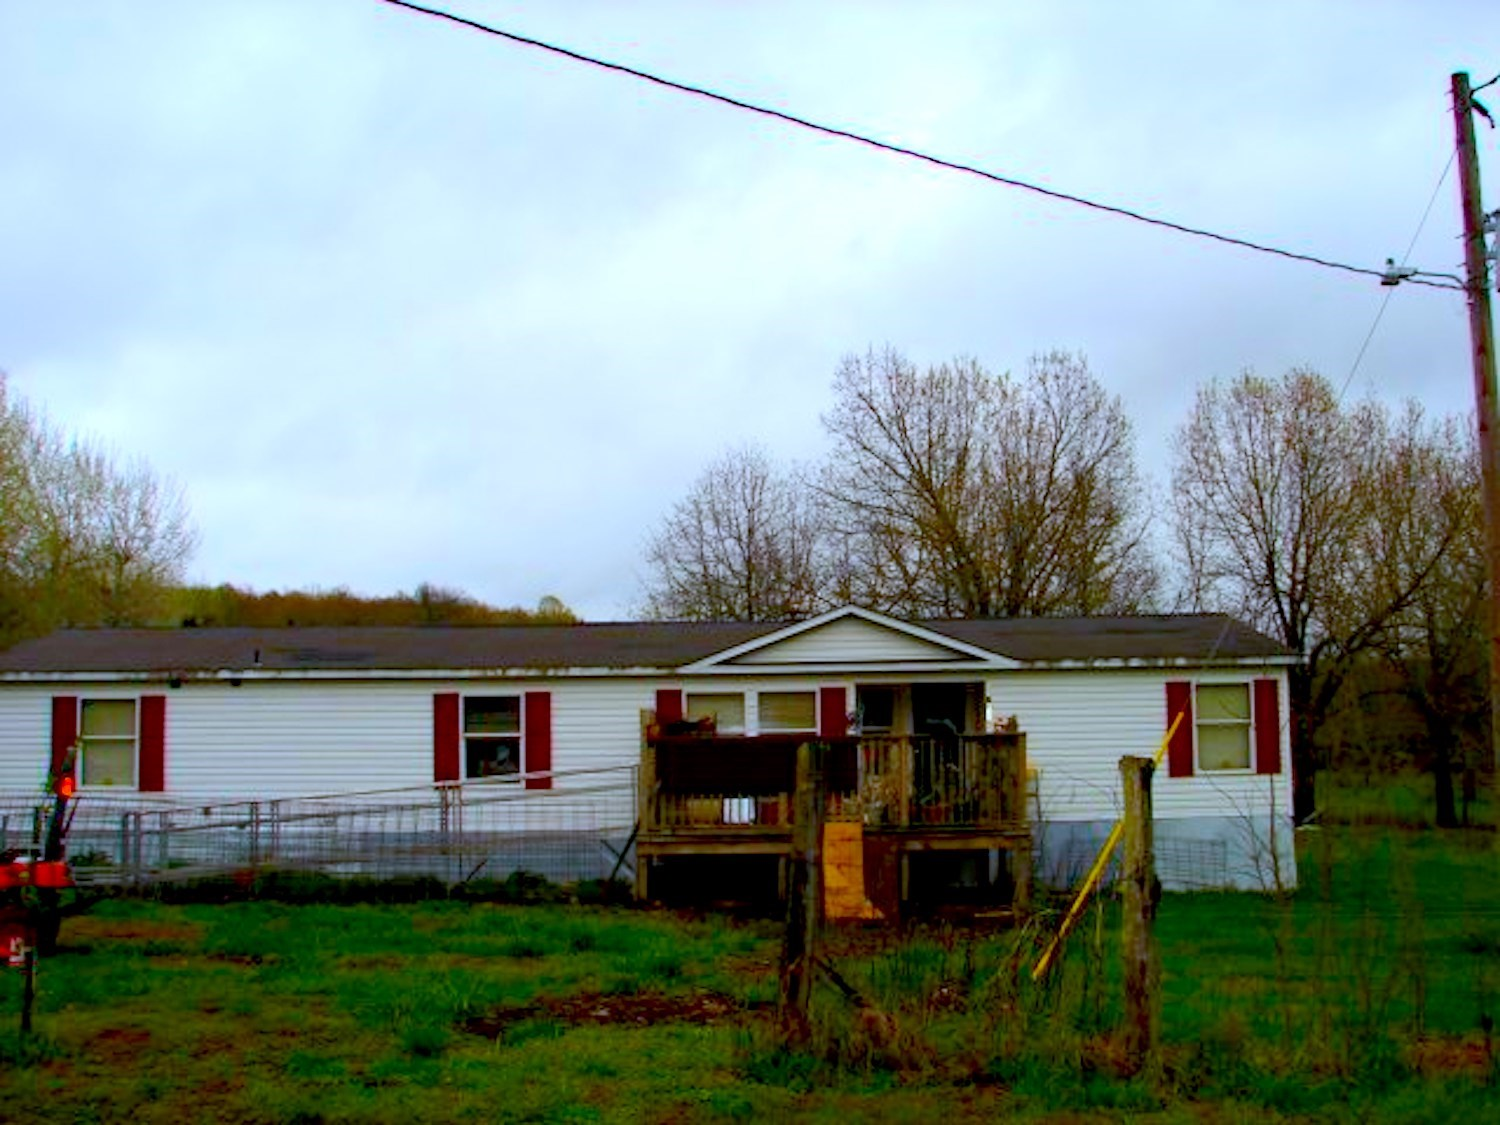 Ozark Hobby farm with Mfg. Home for sale near Salem AR